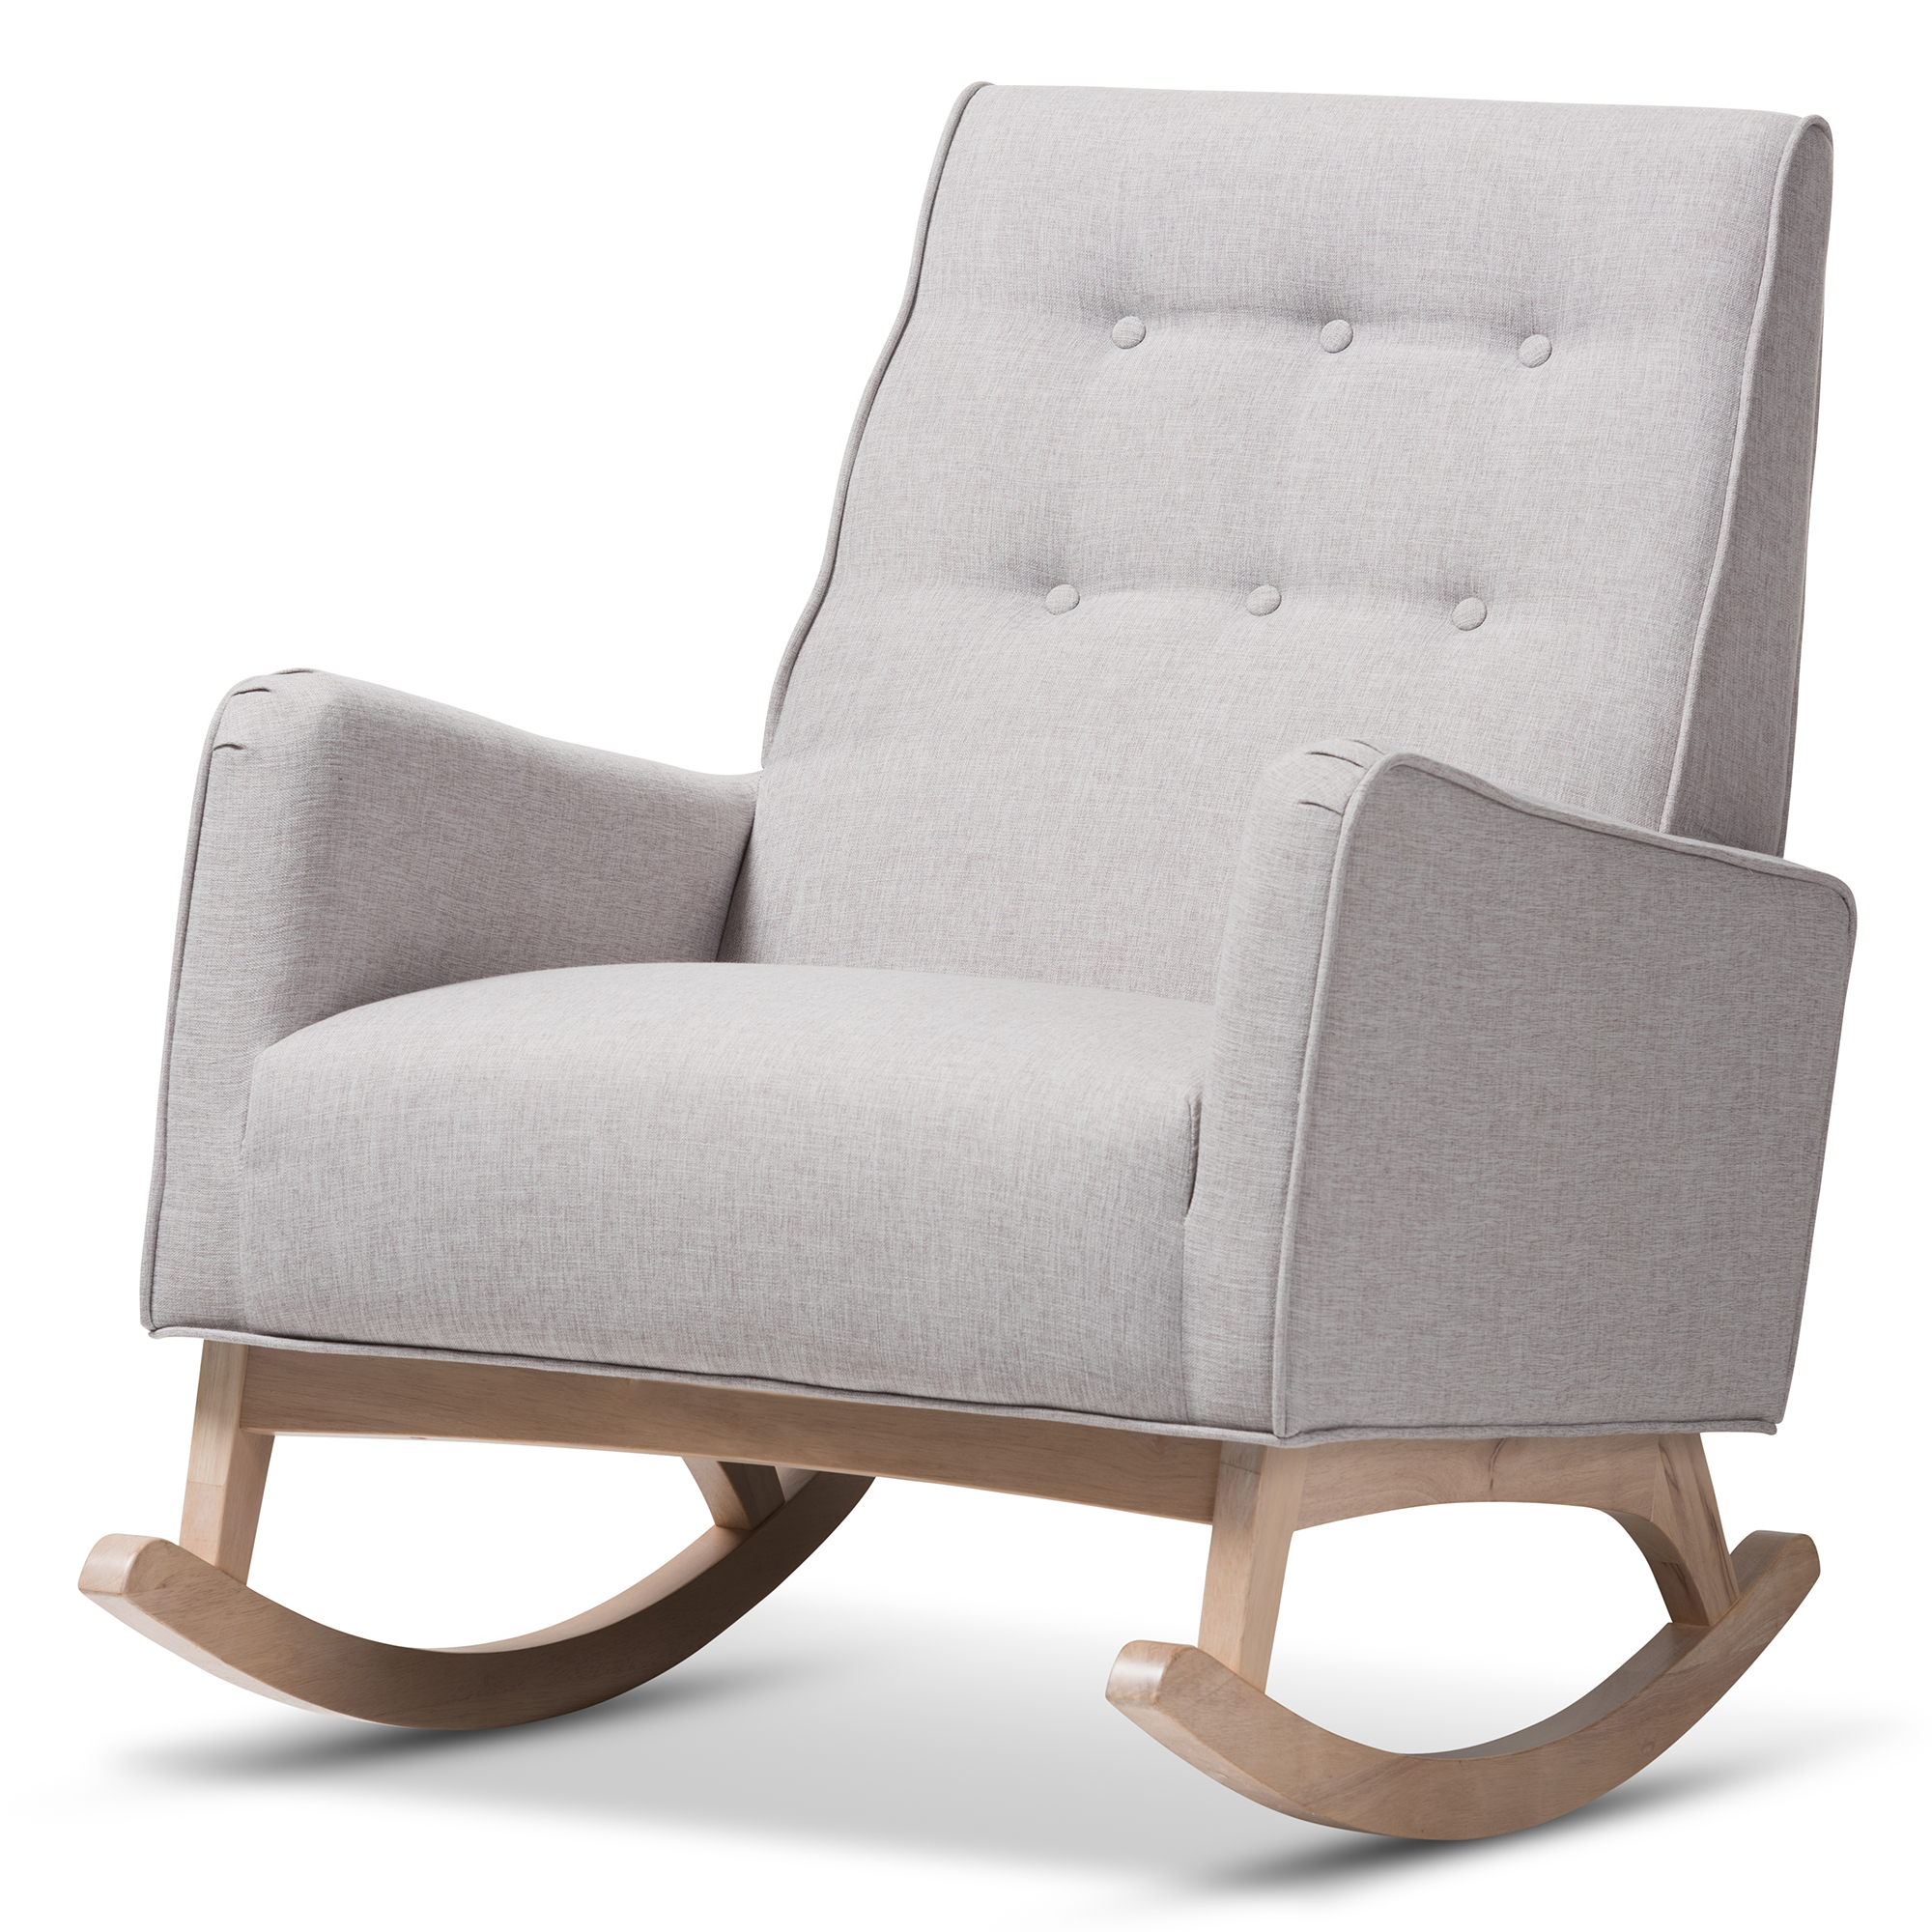 Baxton Studio Marlena Mid Century Modern Greyish Beige Fabric Upholstered  Whitewash Wood Rocking Chair